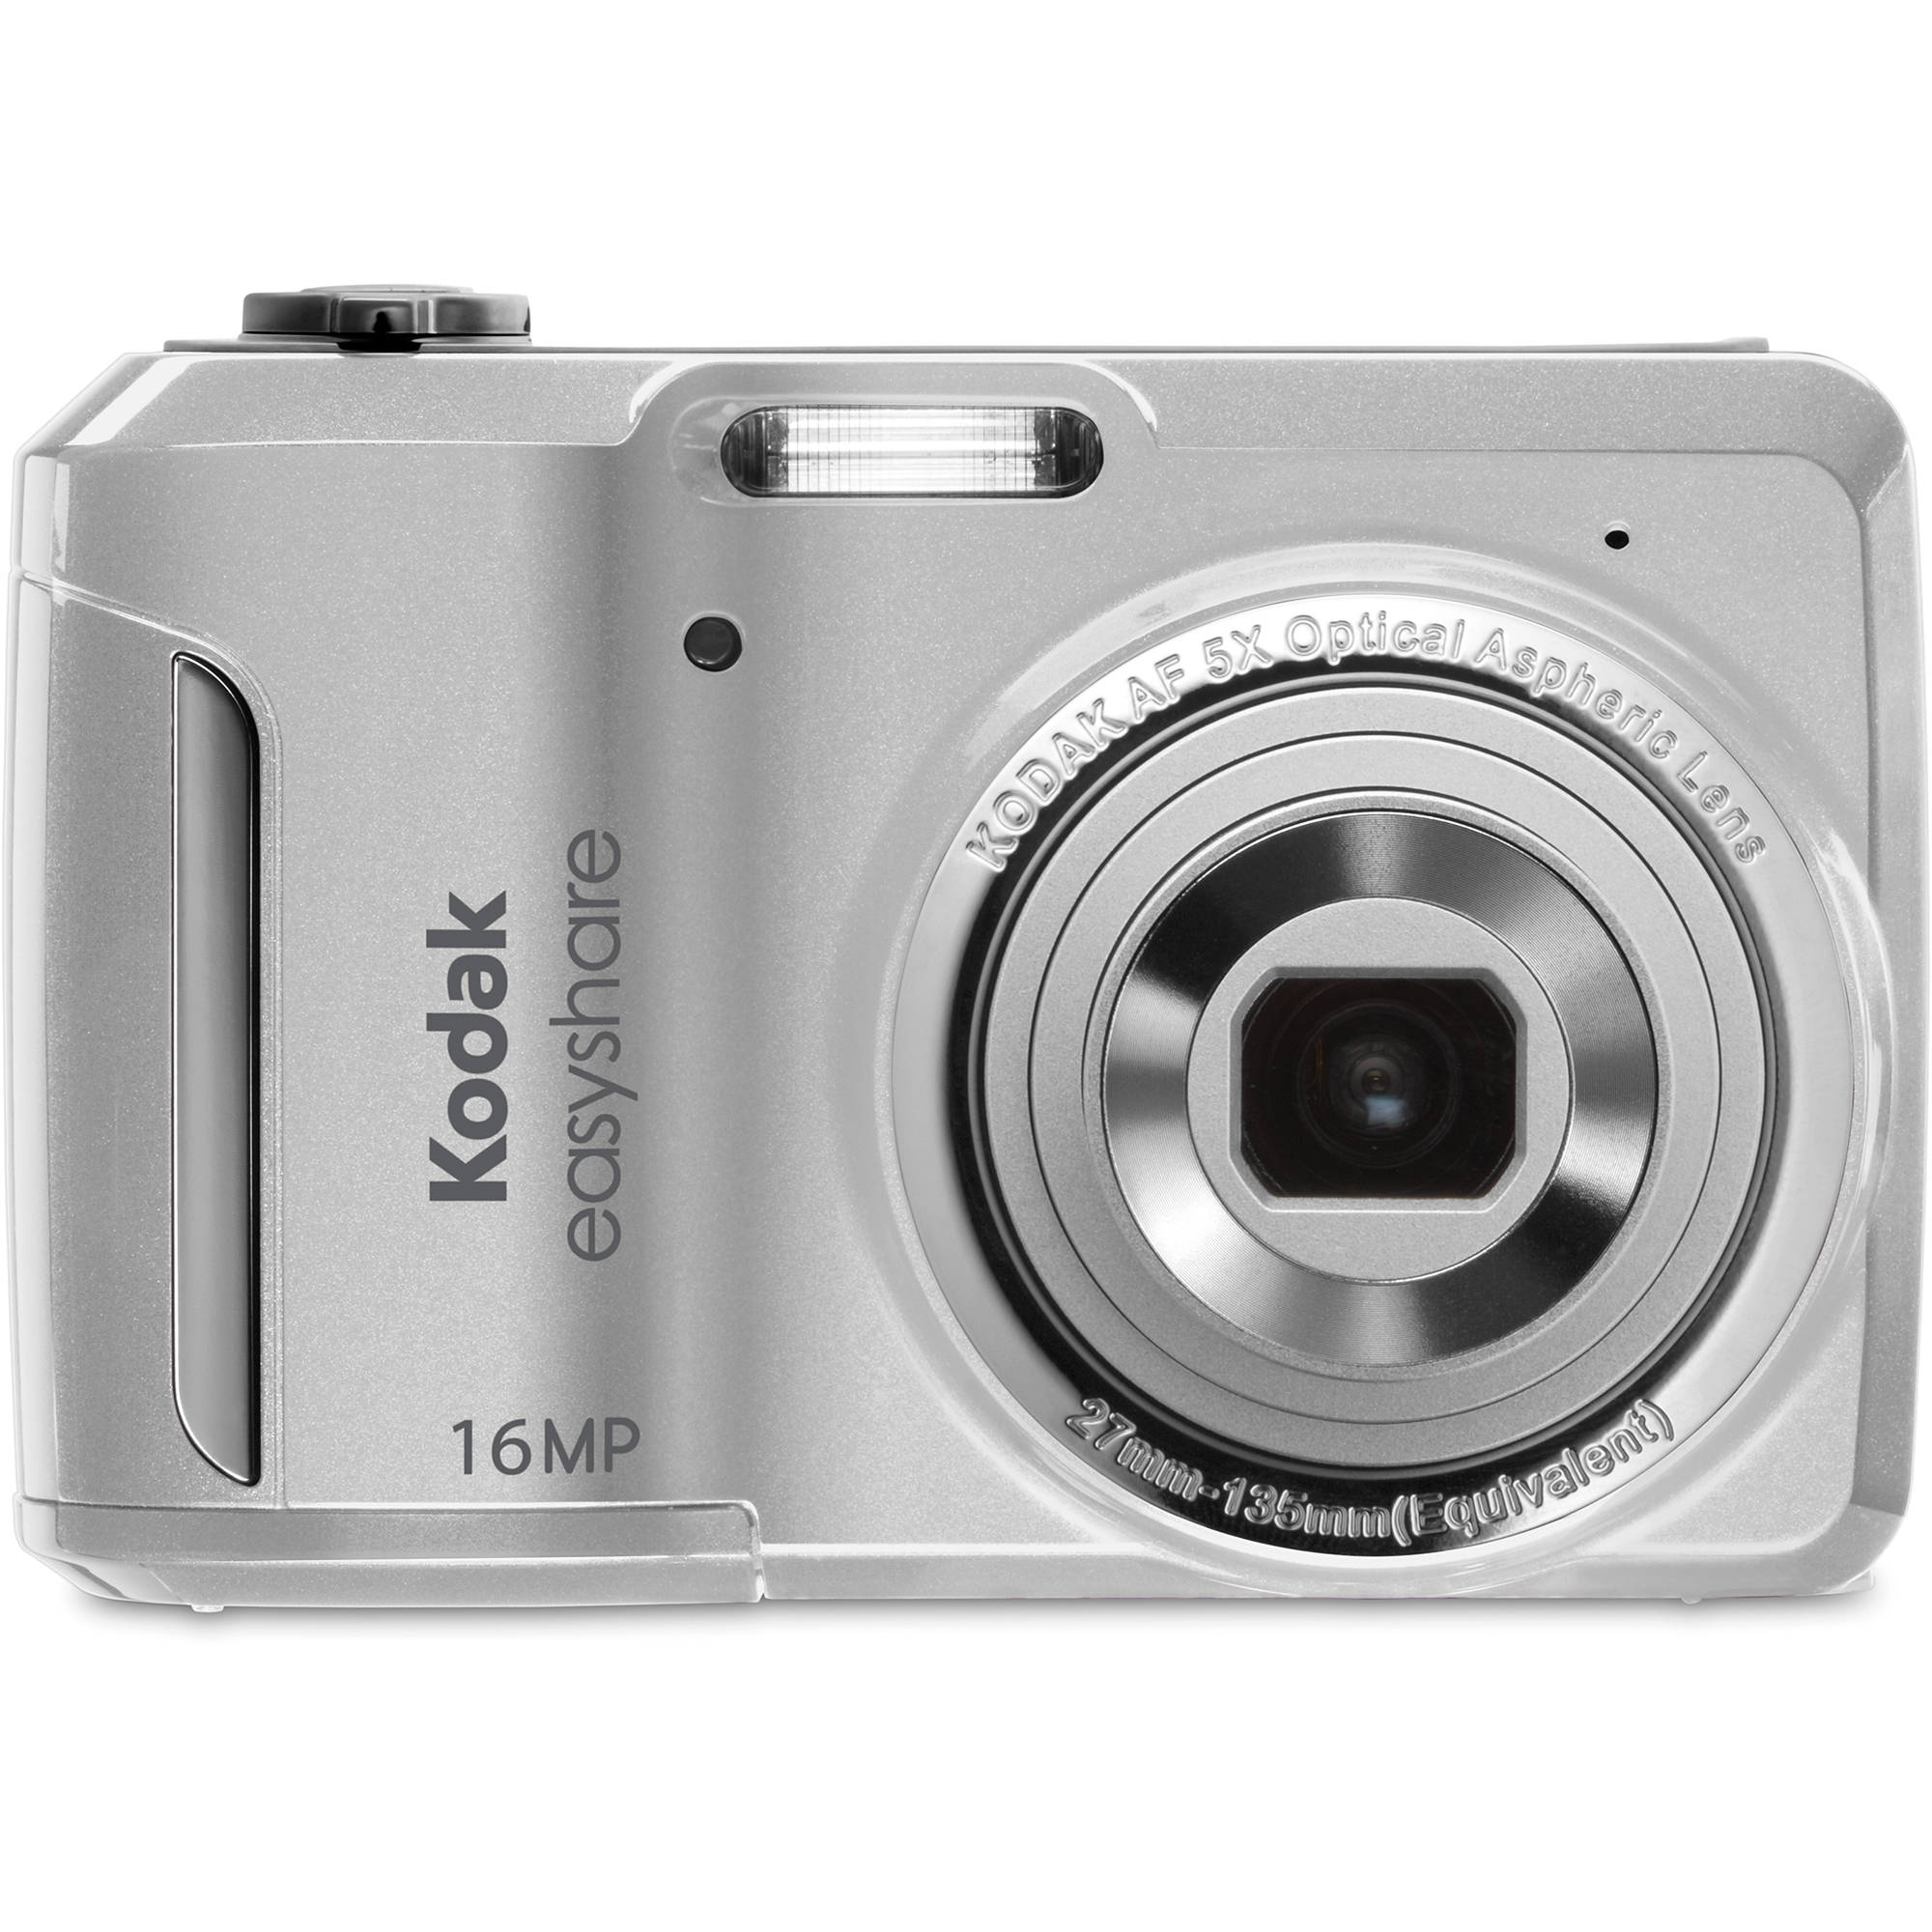 Kodak C1550 EASYSHARE Digital Camera (Silver) 8106999 B&H Photo